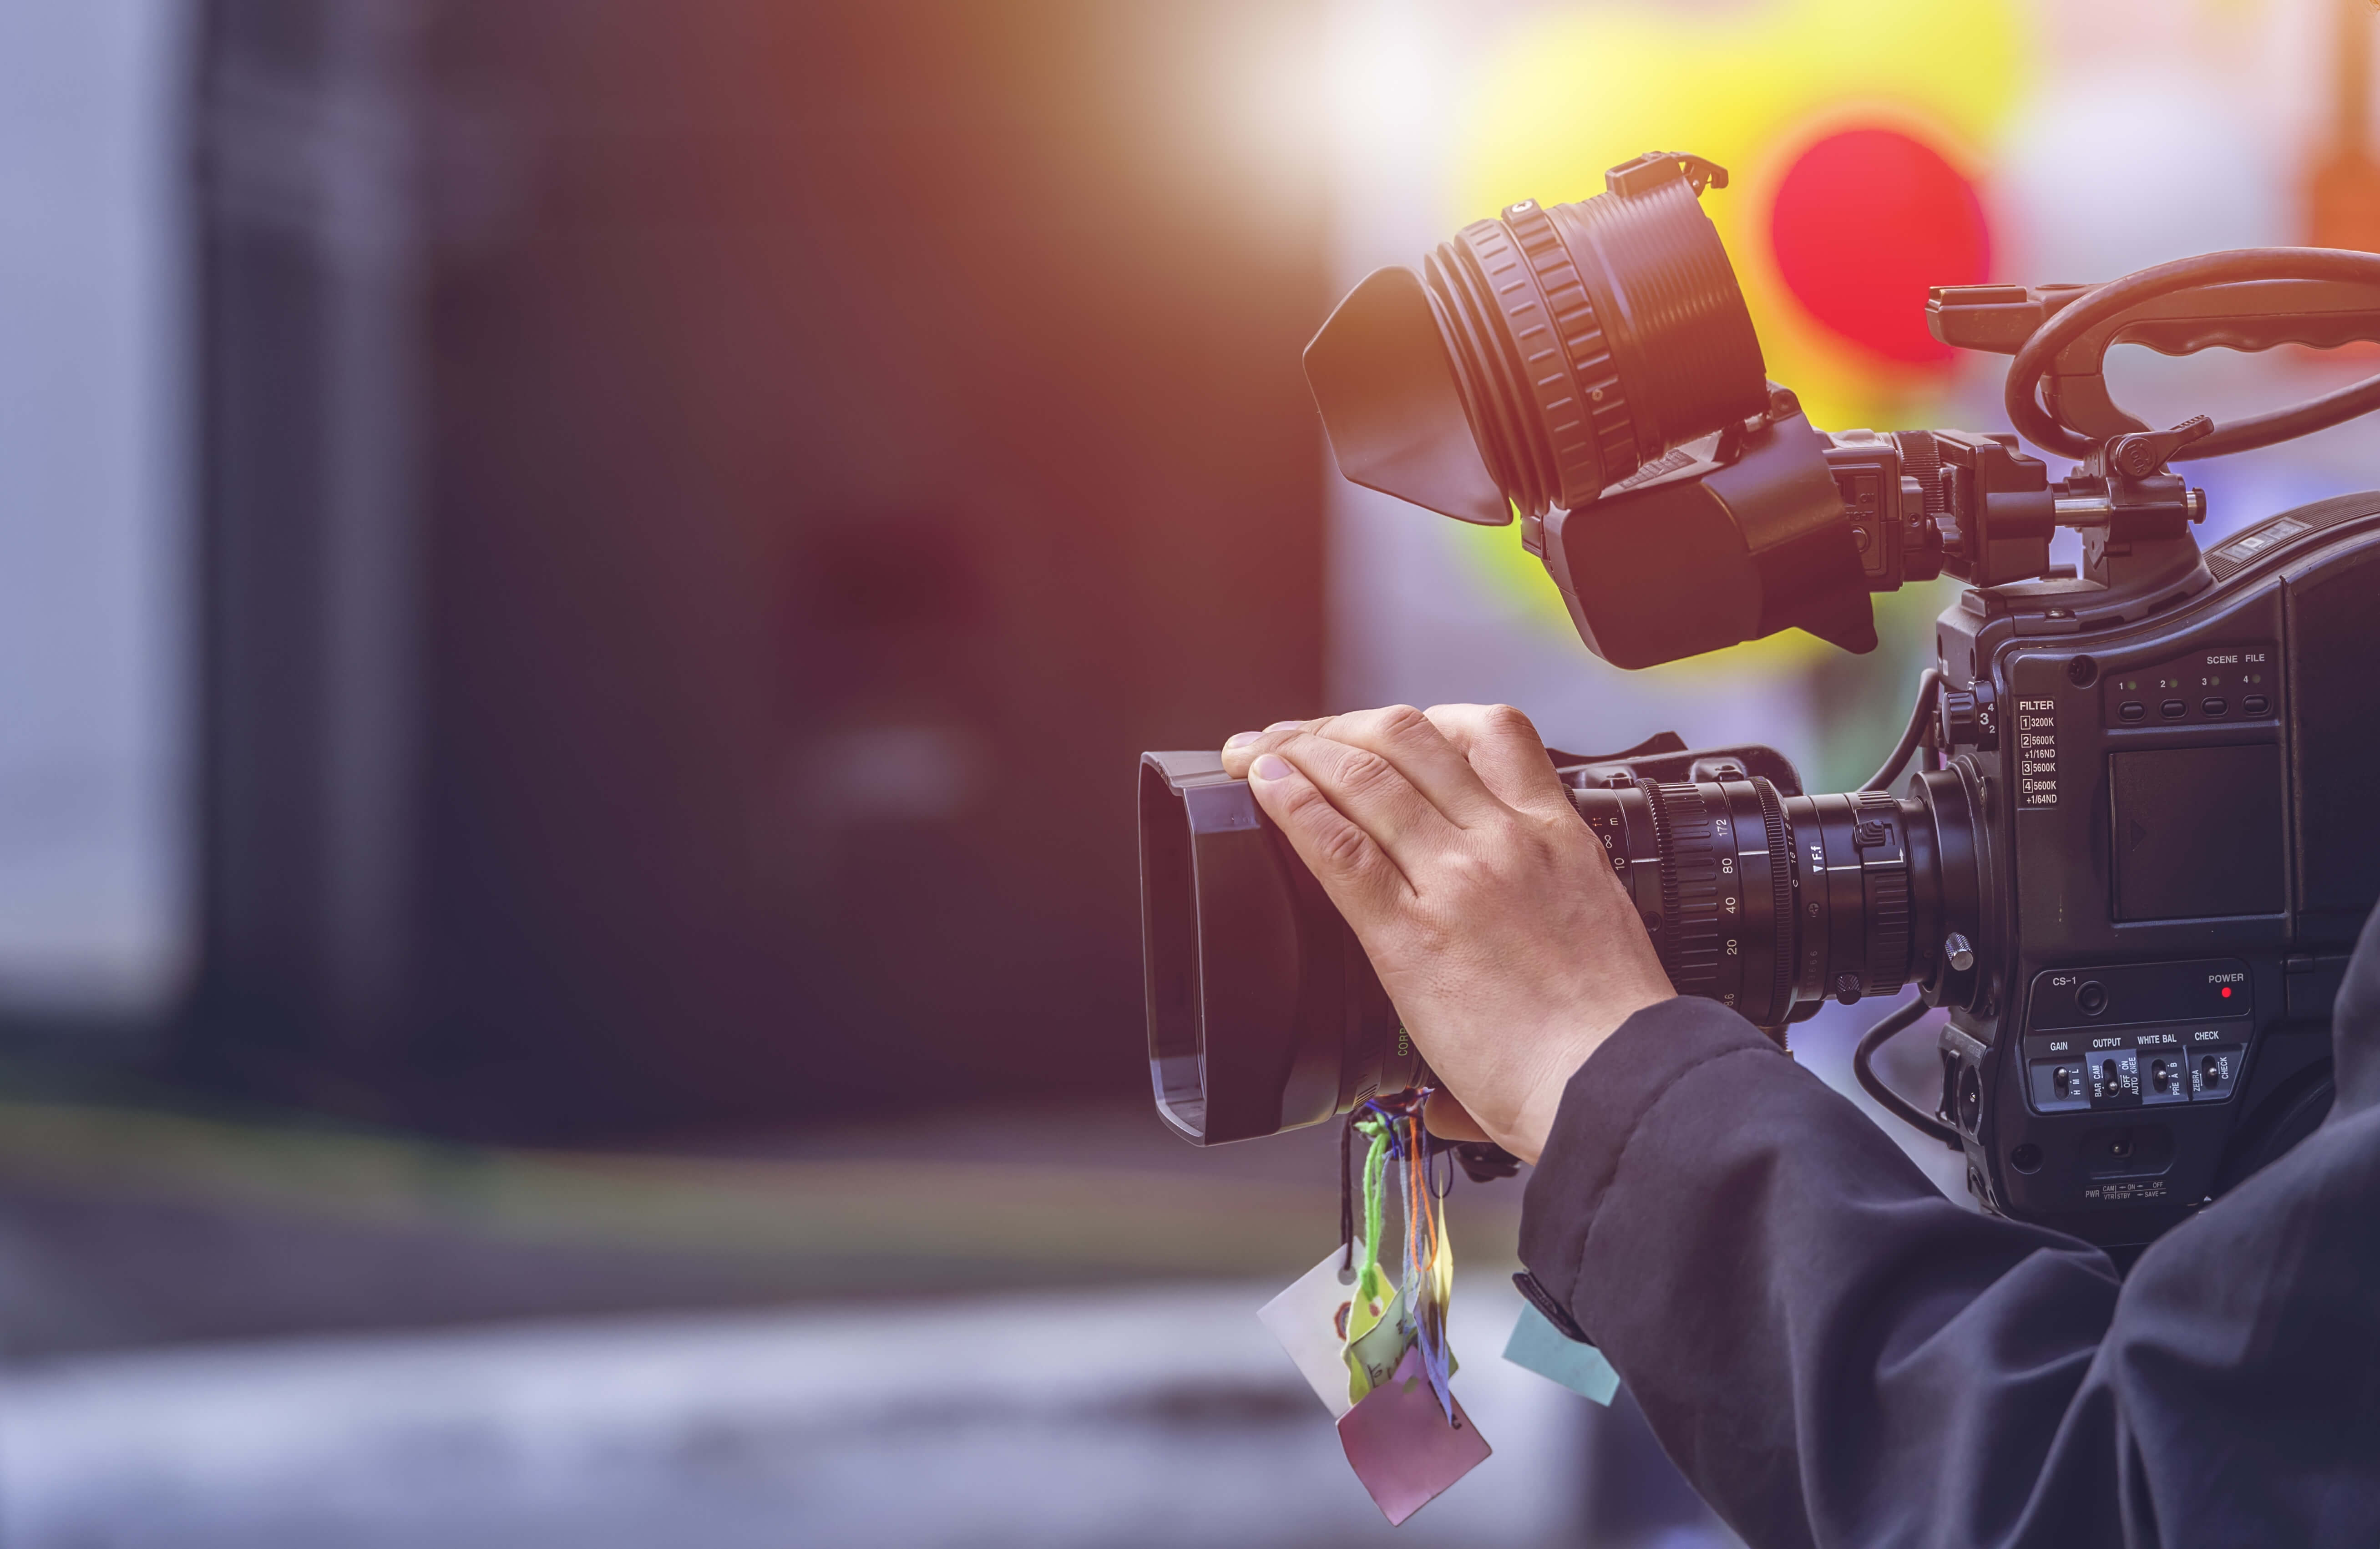 NDigitec Film Production: What differentiates proffesional film production process?